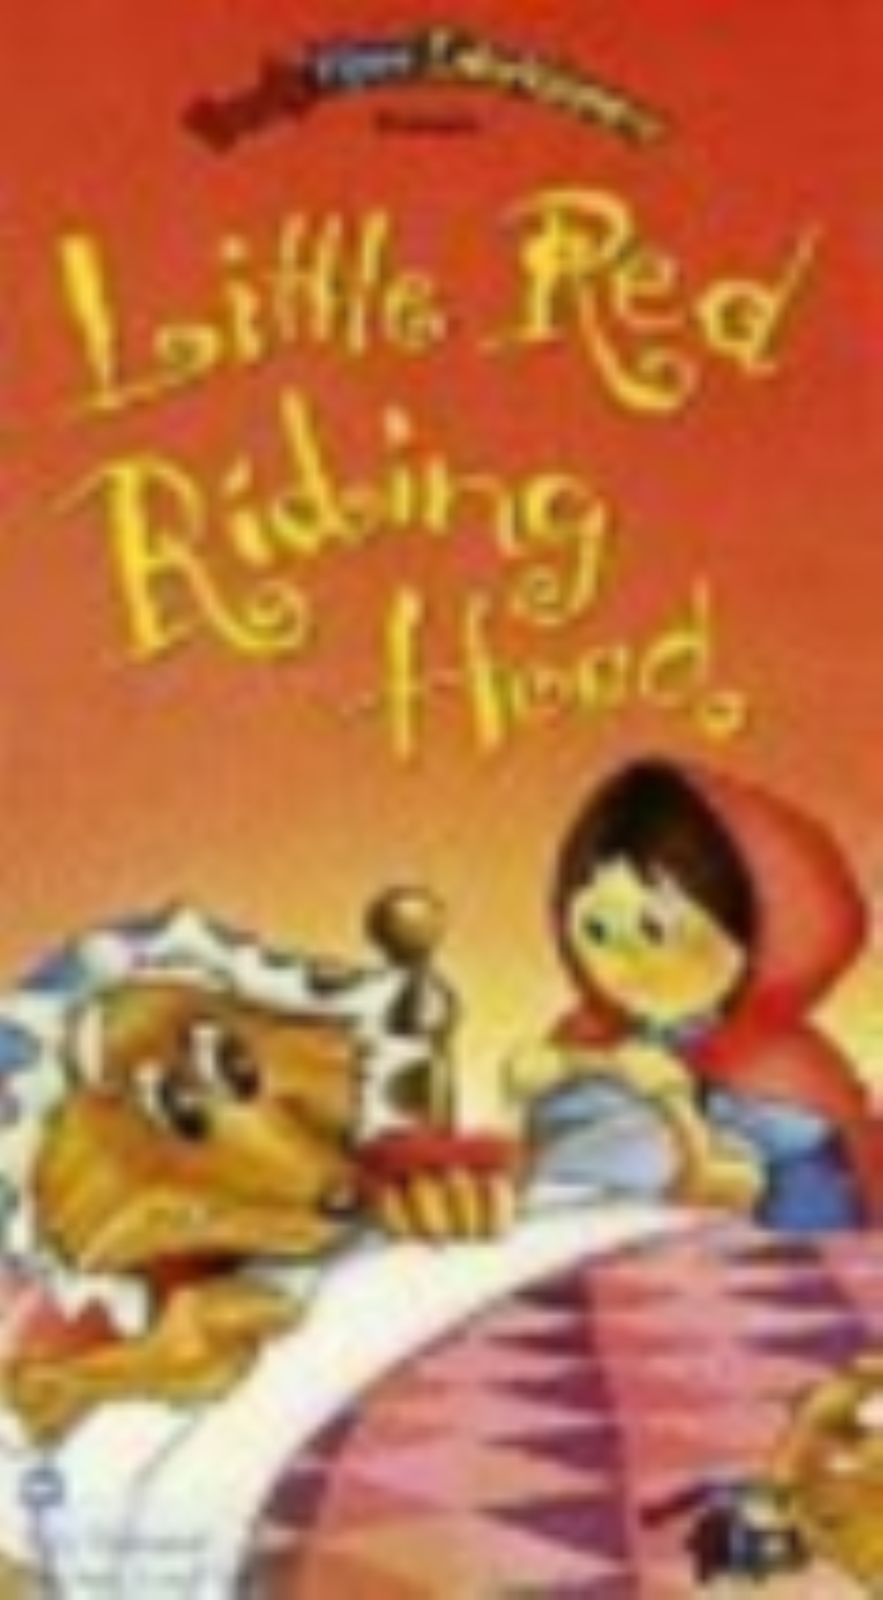 Little Red Riding Hood Vhs